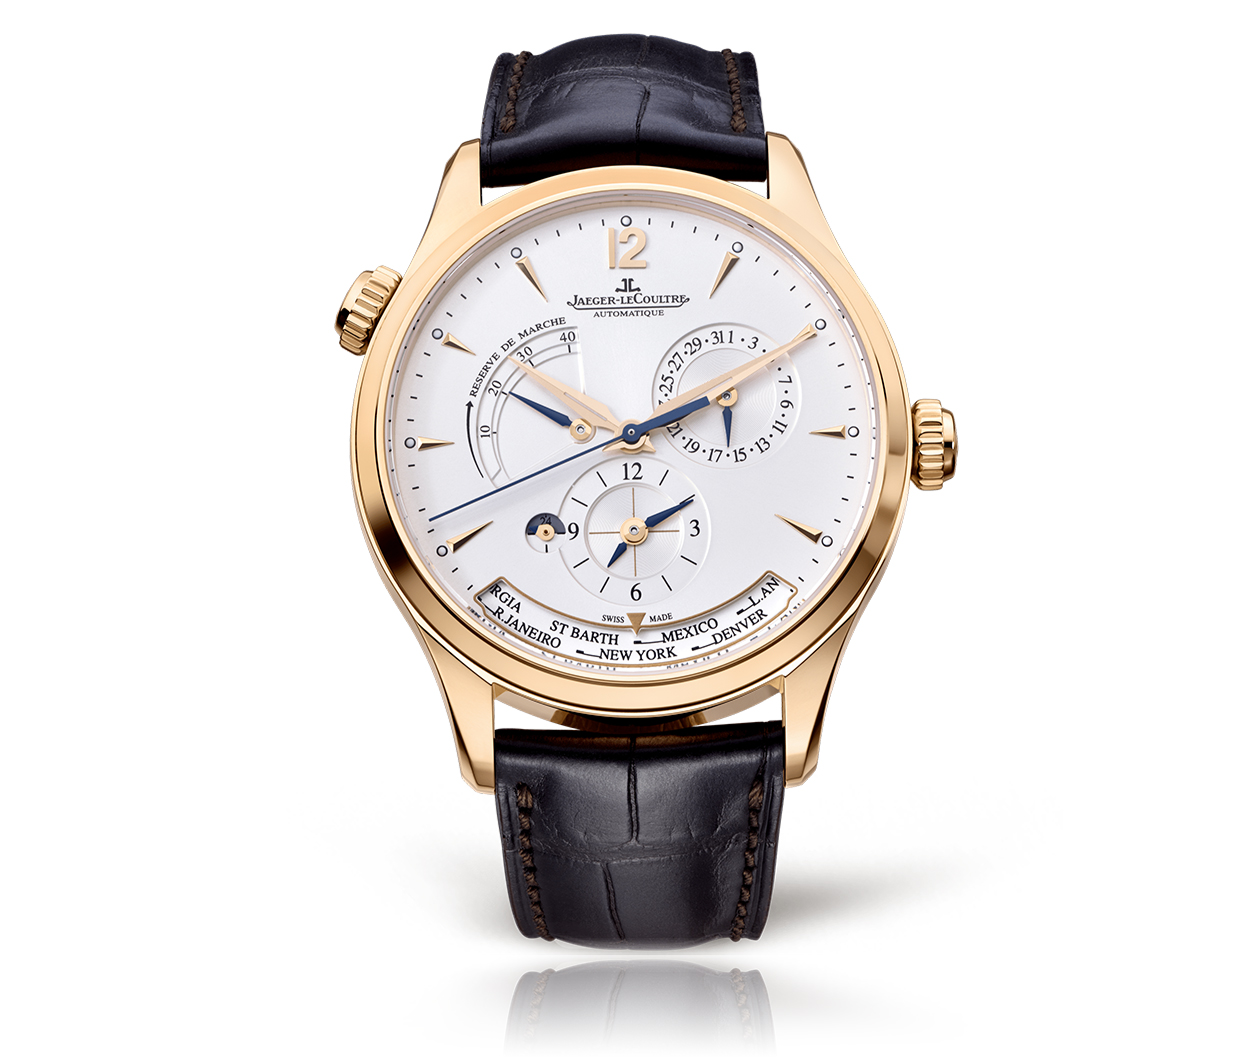 JaegerLeCoultre Master ControlGeographic 1422521 Carousel 1 FINAL